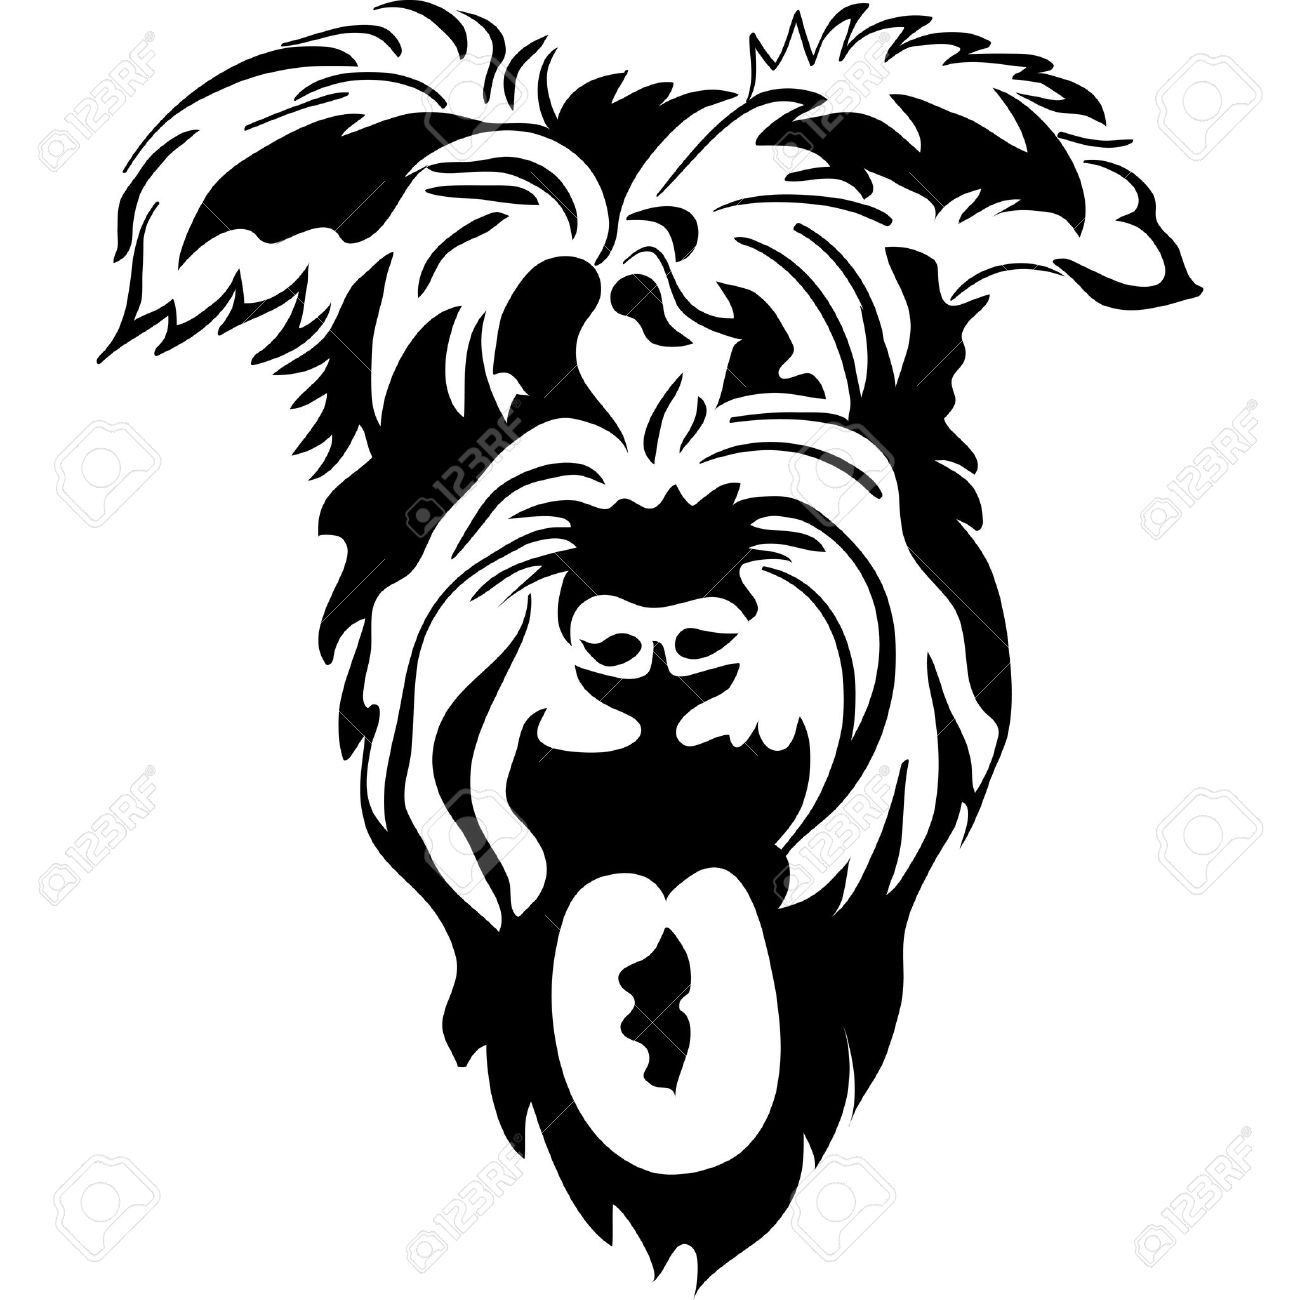 Schnauzer clipart #13, Download drawings